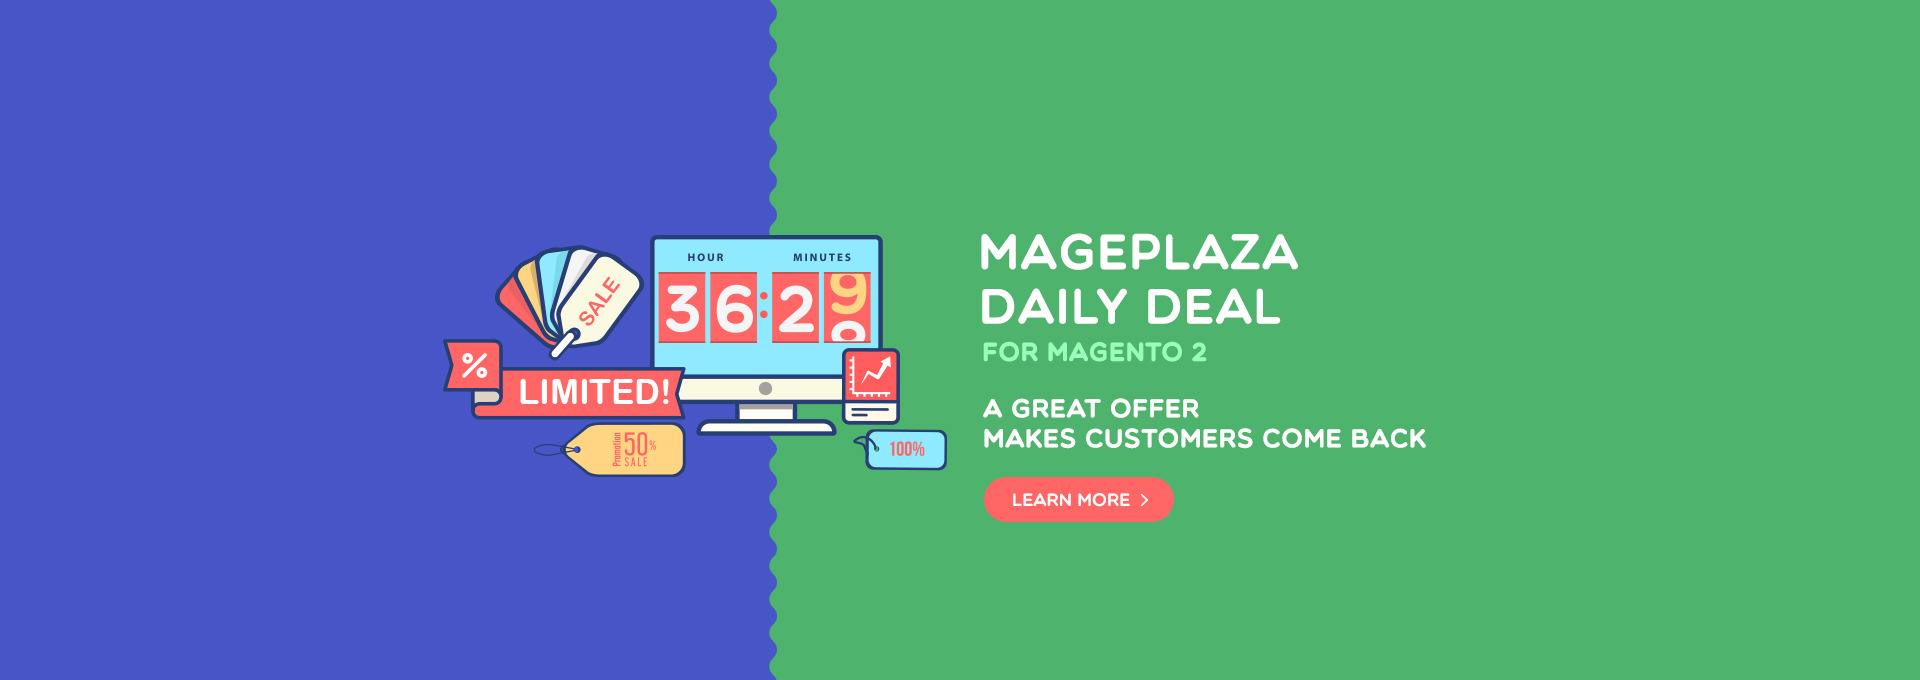 Magento 2 Daily Deal - awesome sales motivation tool